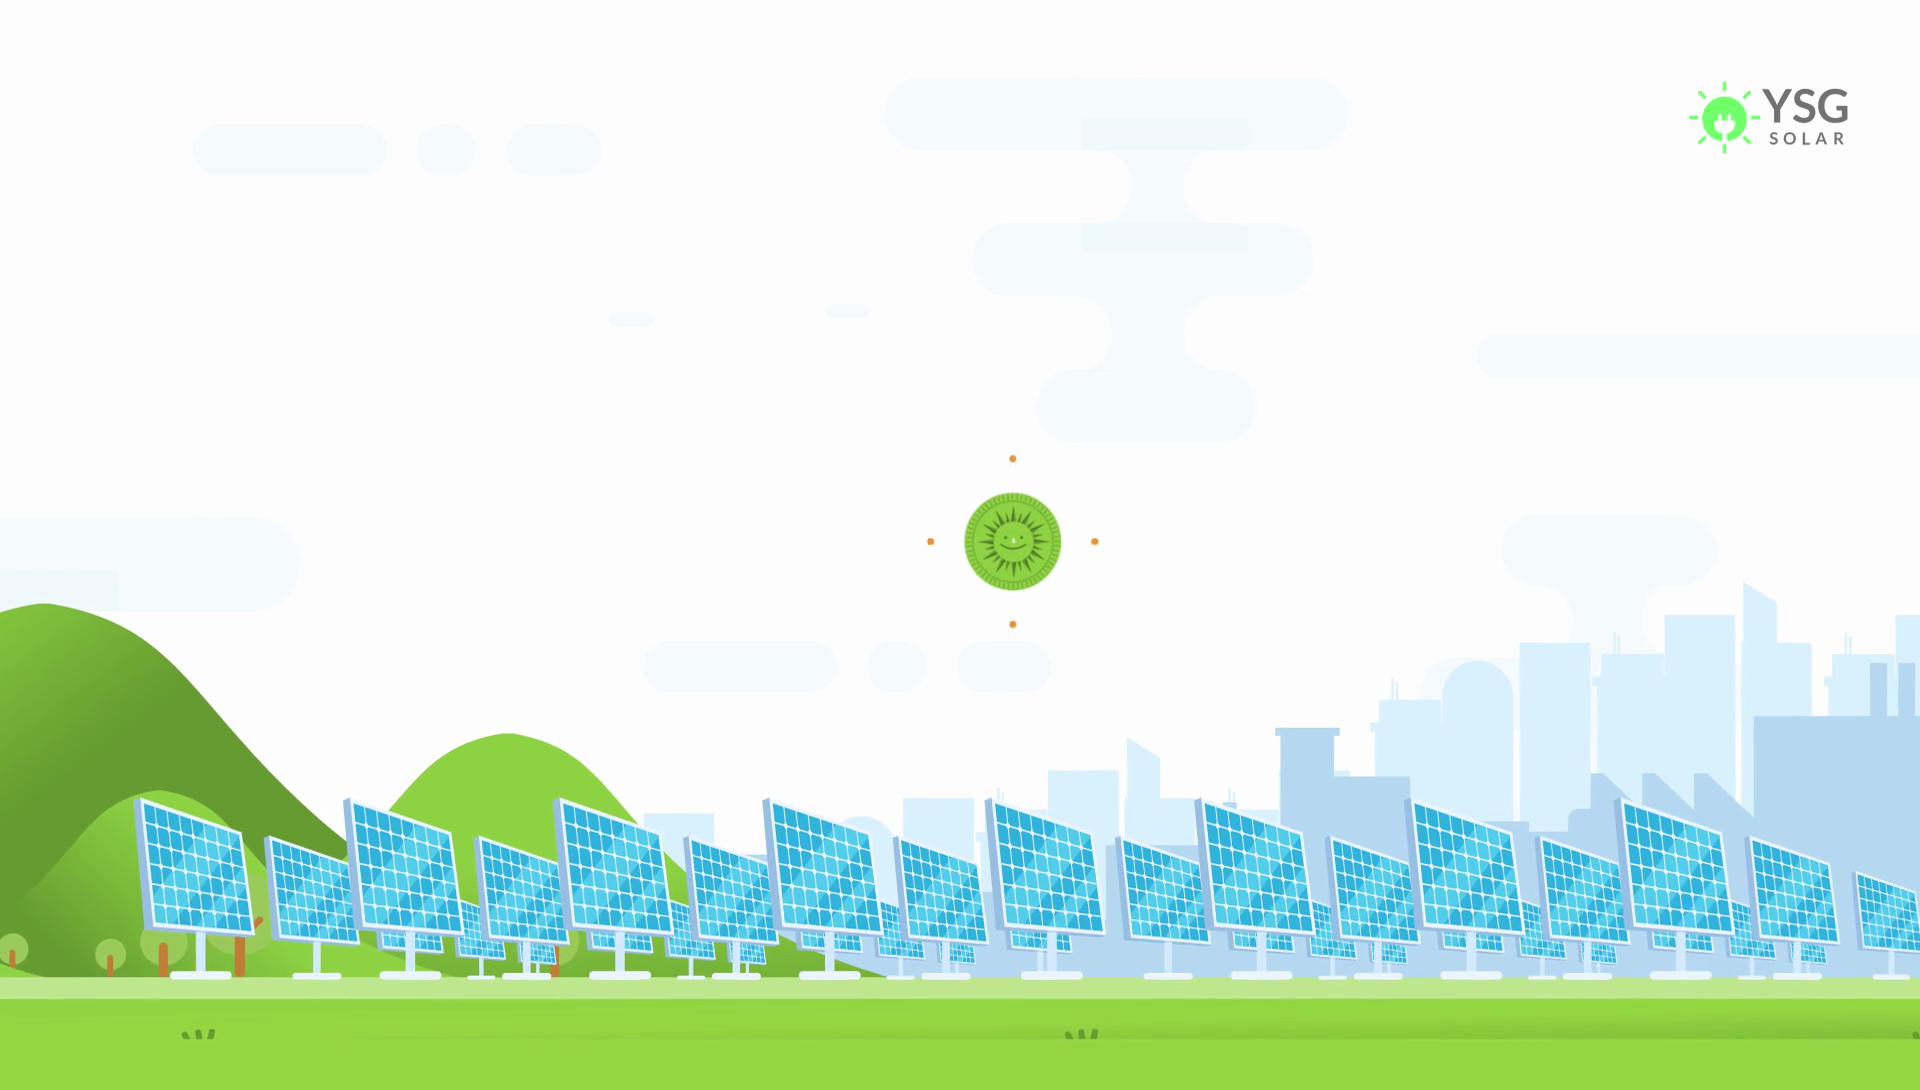 A Solar Credit Animated Above A Field of Solar Panels